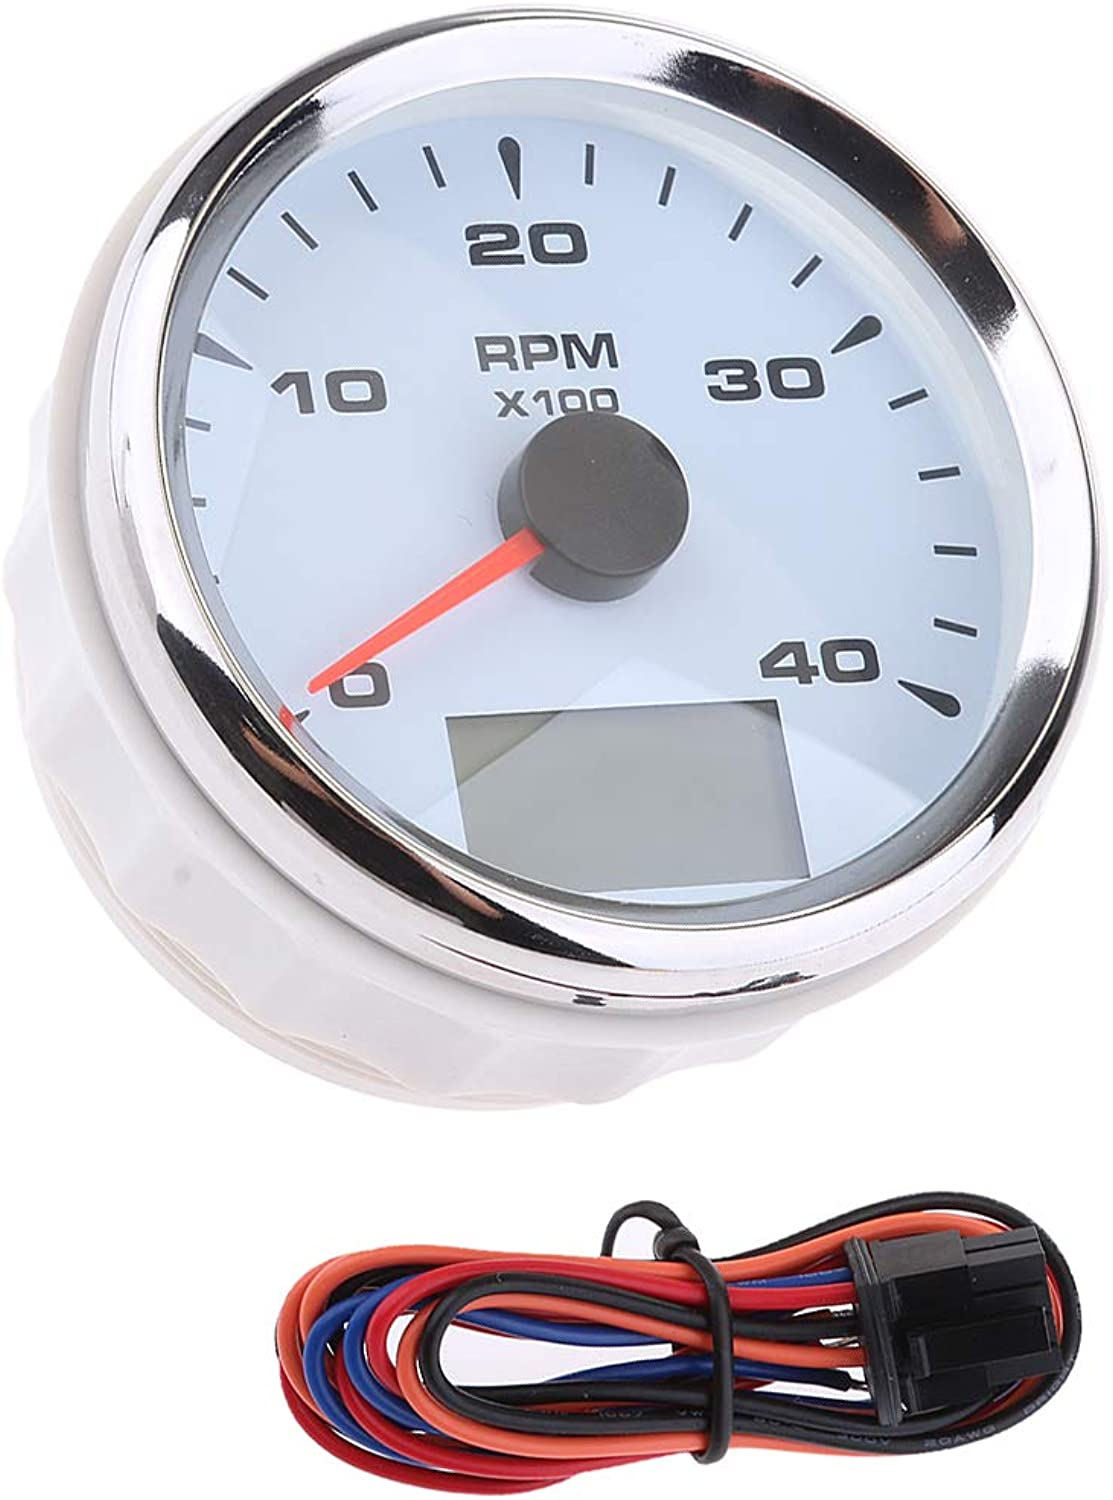 MagiDeal 85mm 04000 RPM Electrical Tachometer Gauge LED Indication Odometer Waterproof